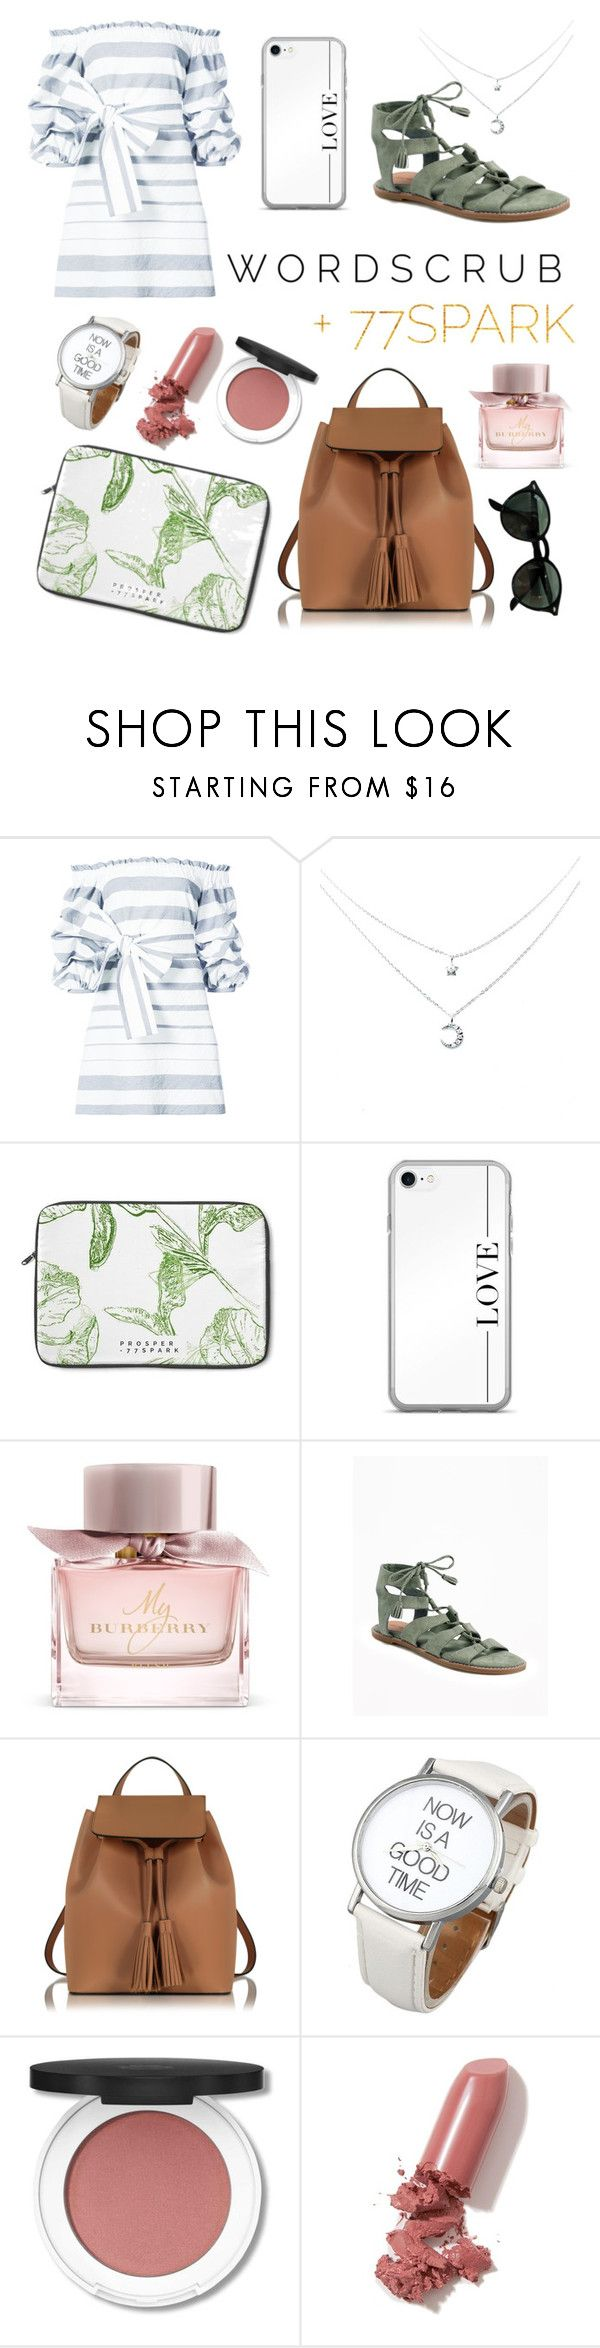 """""""77SPARK"""" by taylor-anne-moore ❤ liked on Polyvore featuring Alexis, Burberry, Le Parmentier, LAQA & Co. and Ray-Ban"""